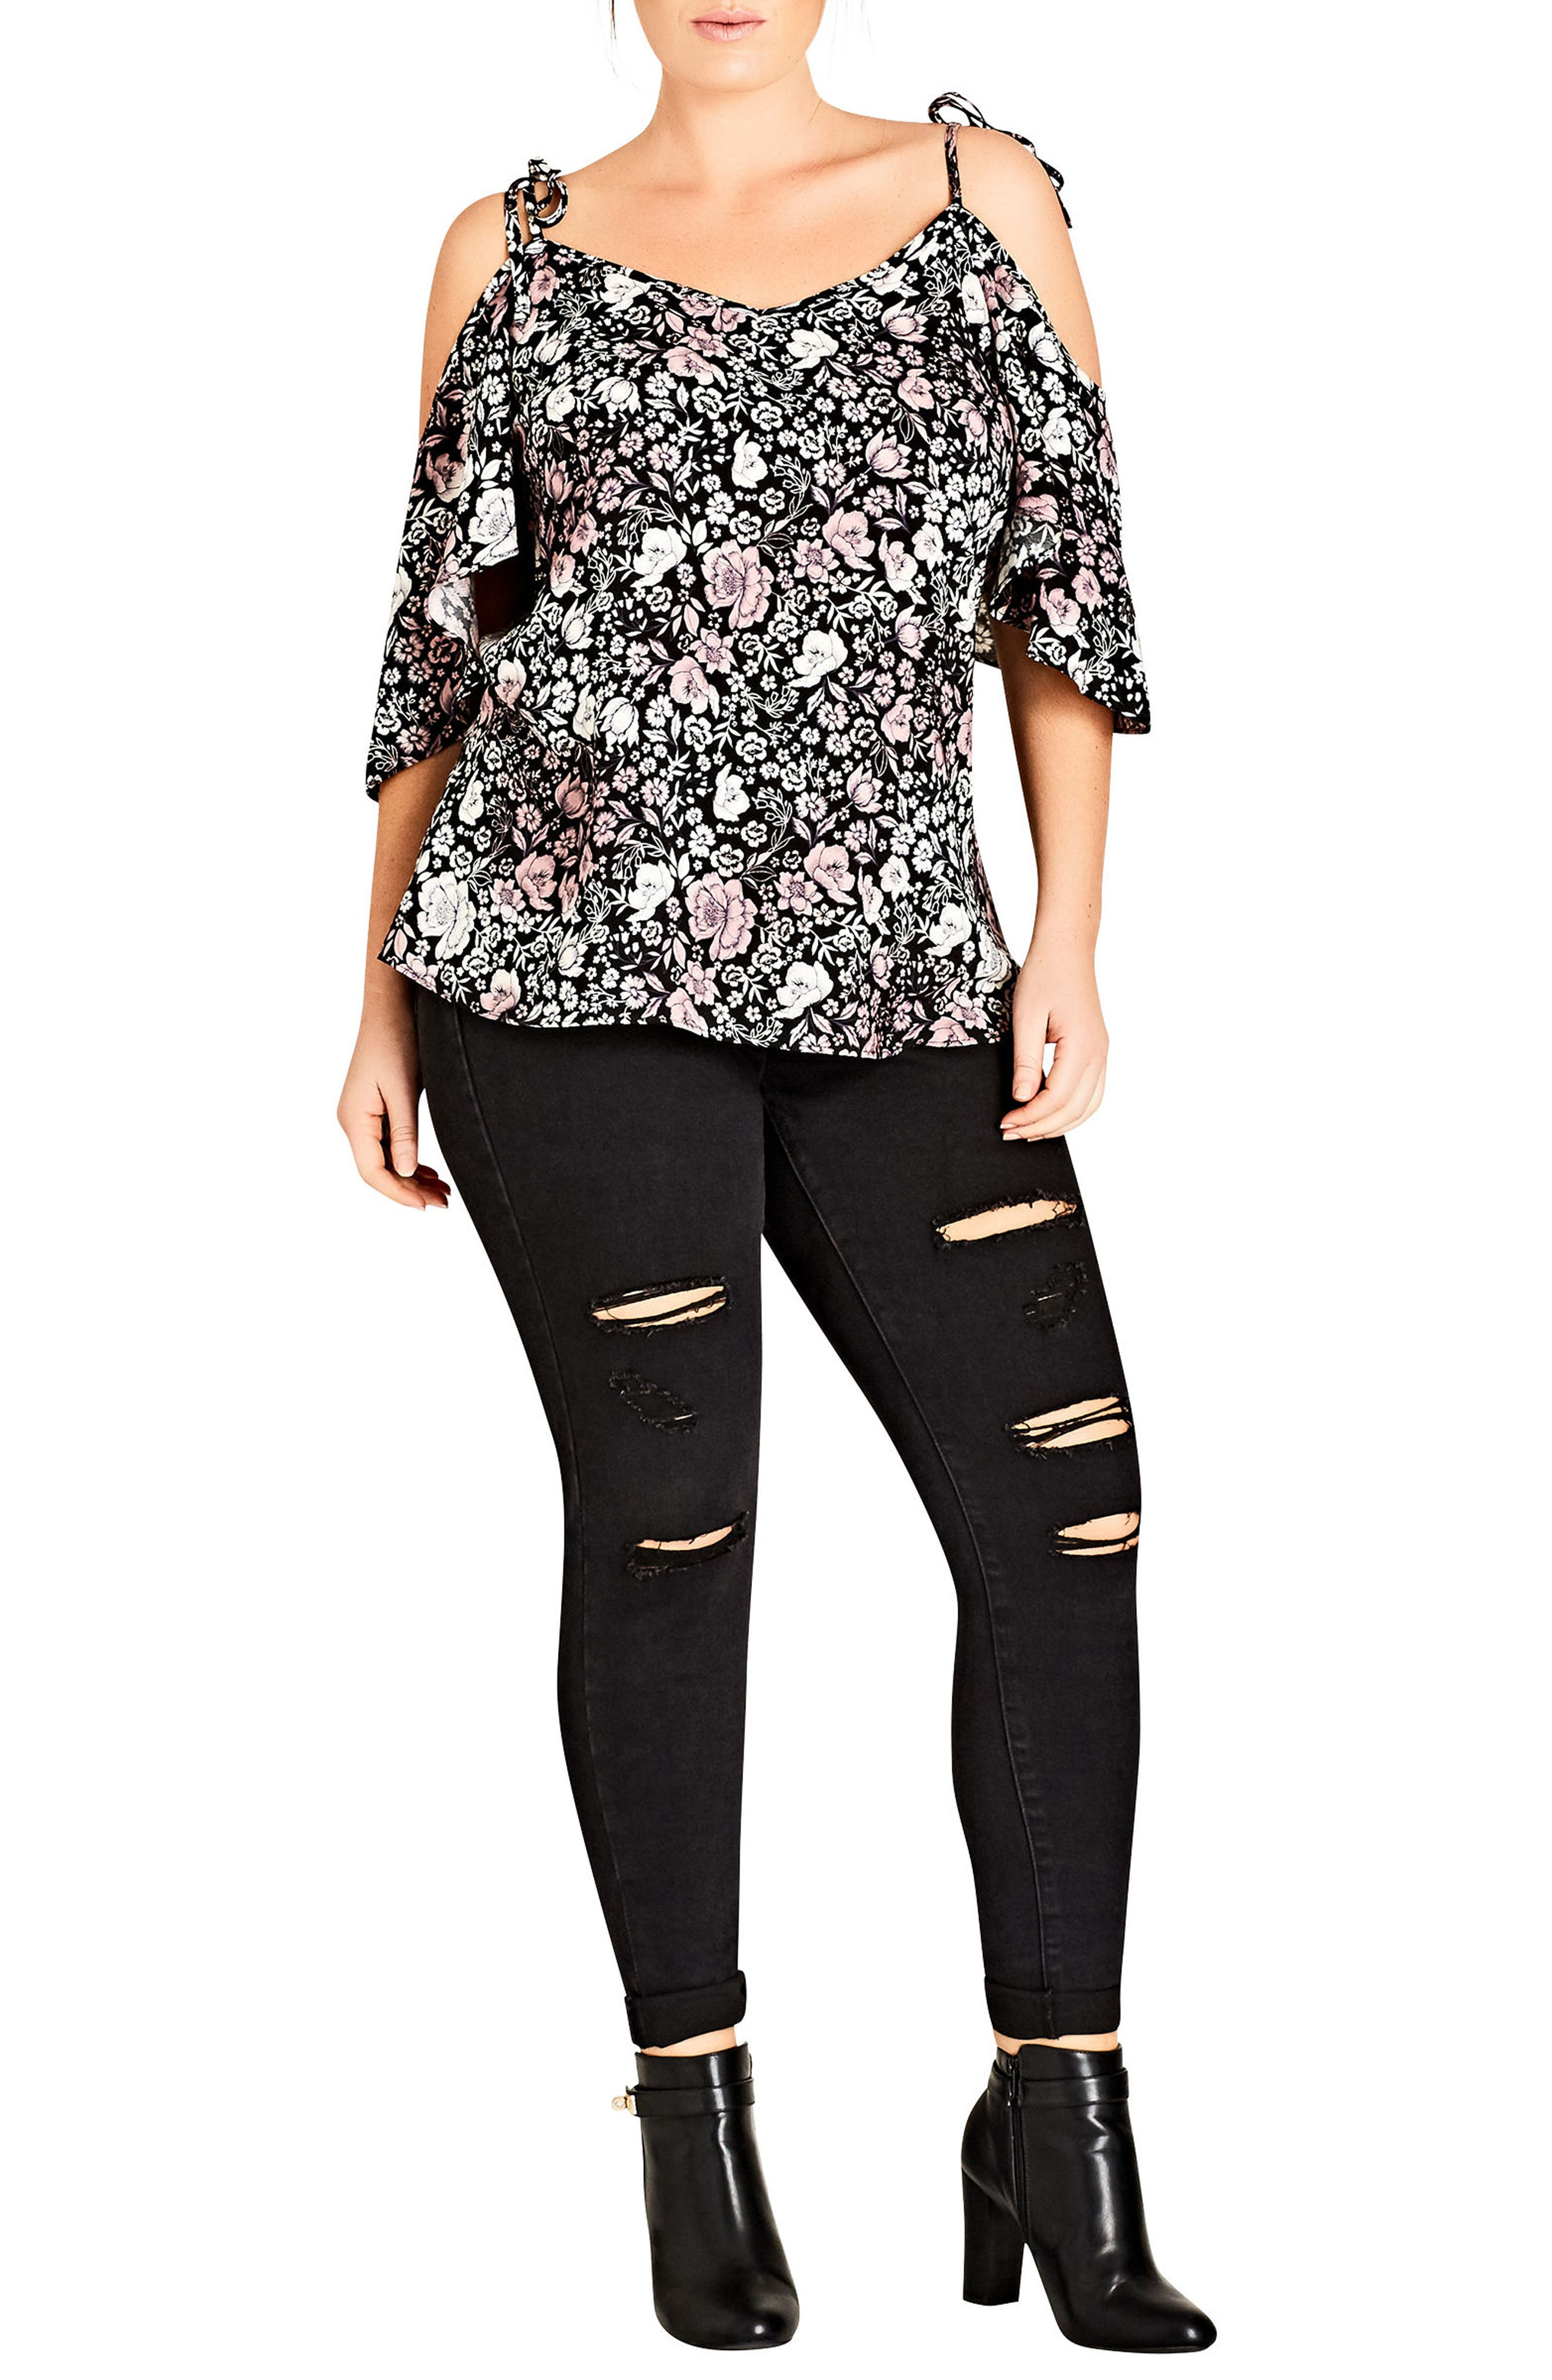 Alternate Image 1 Selected - City Chic Etched Floral Cold Shoulder Top (Plus Size)